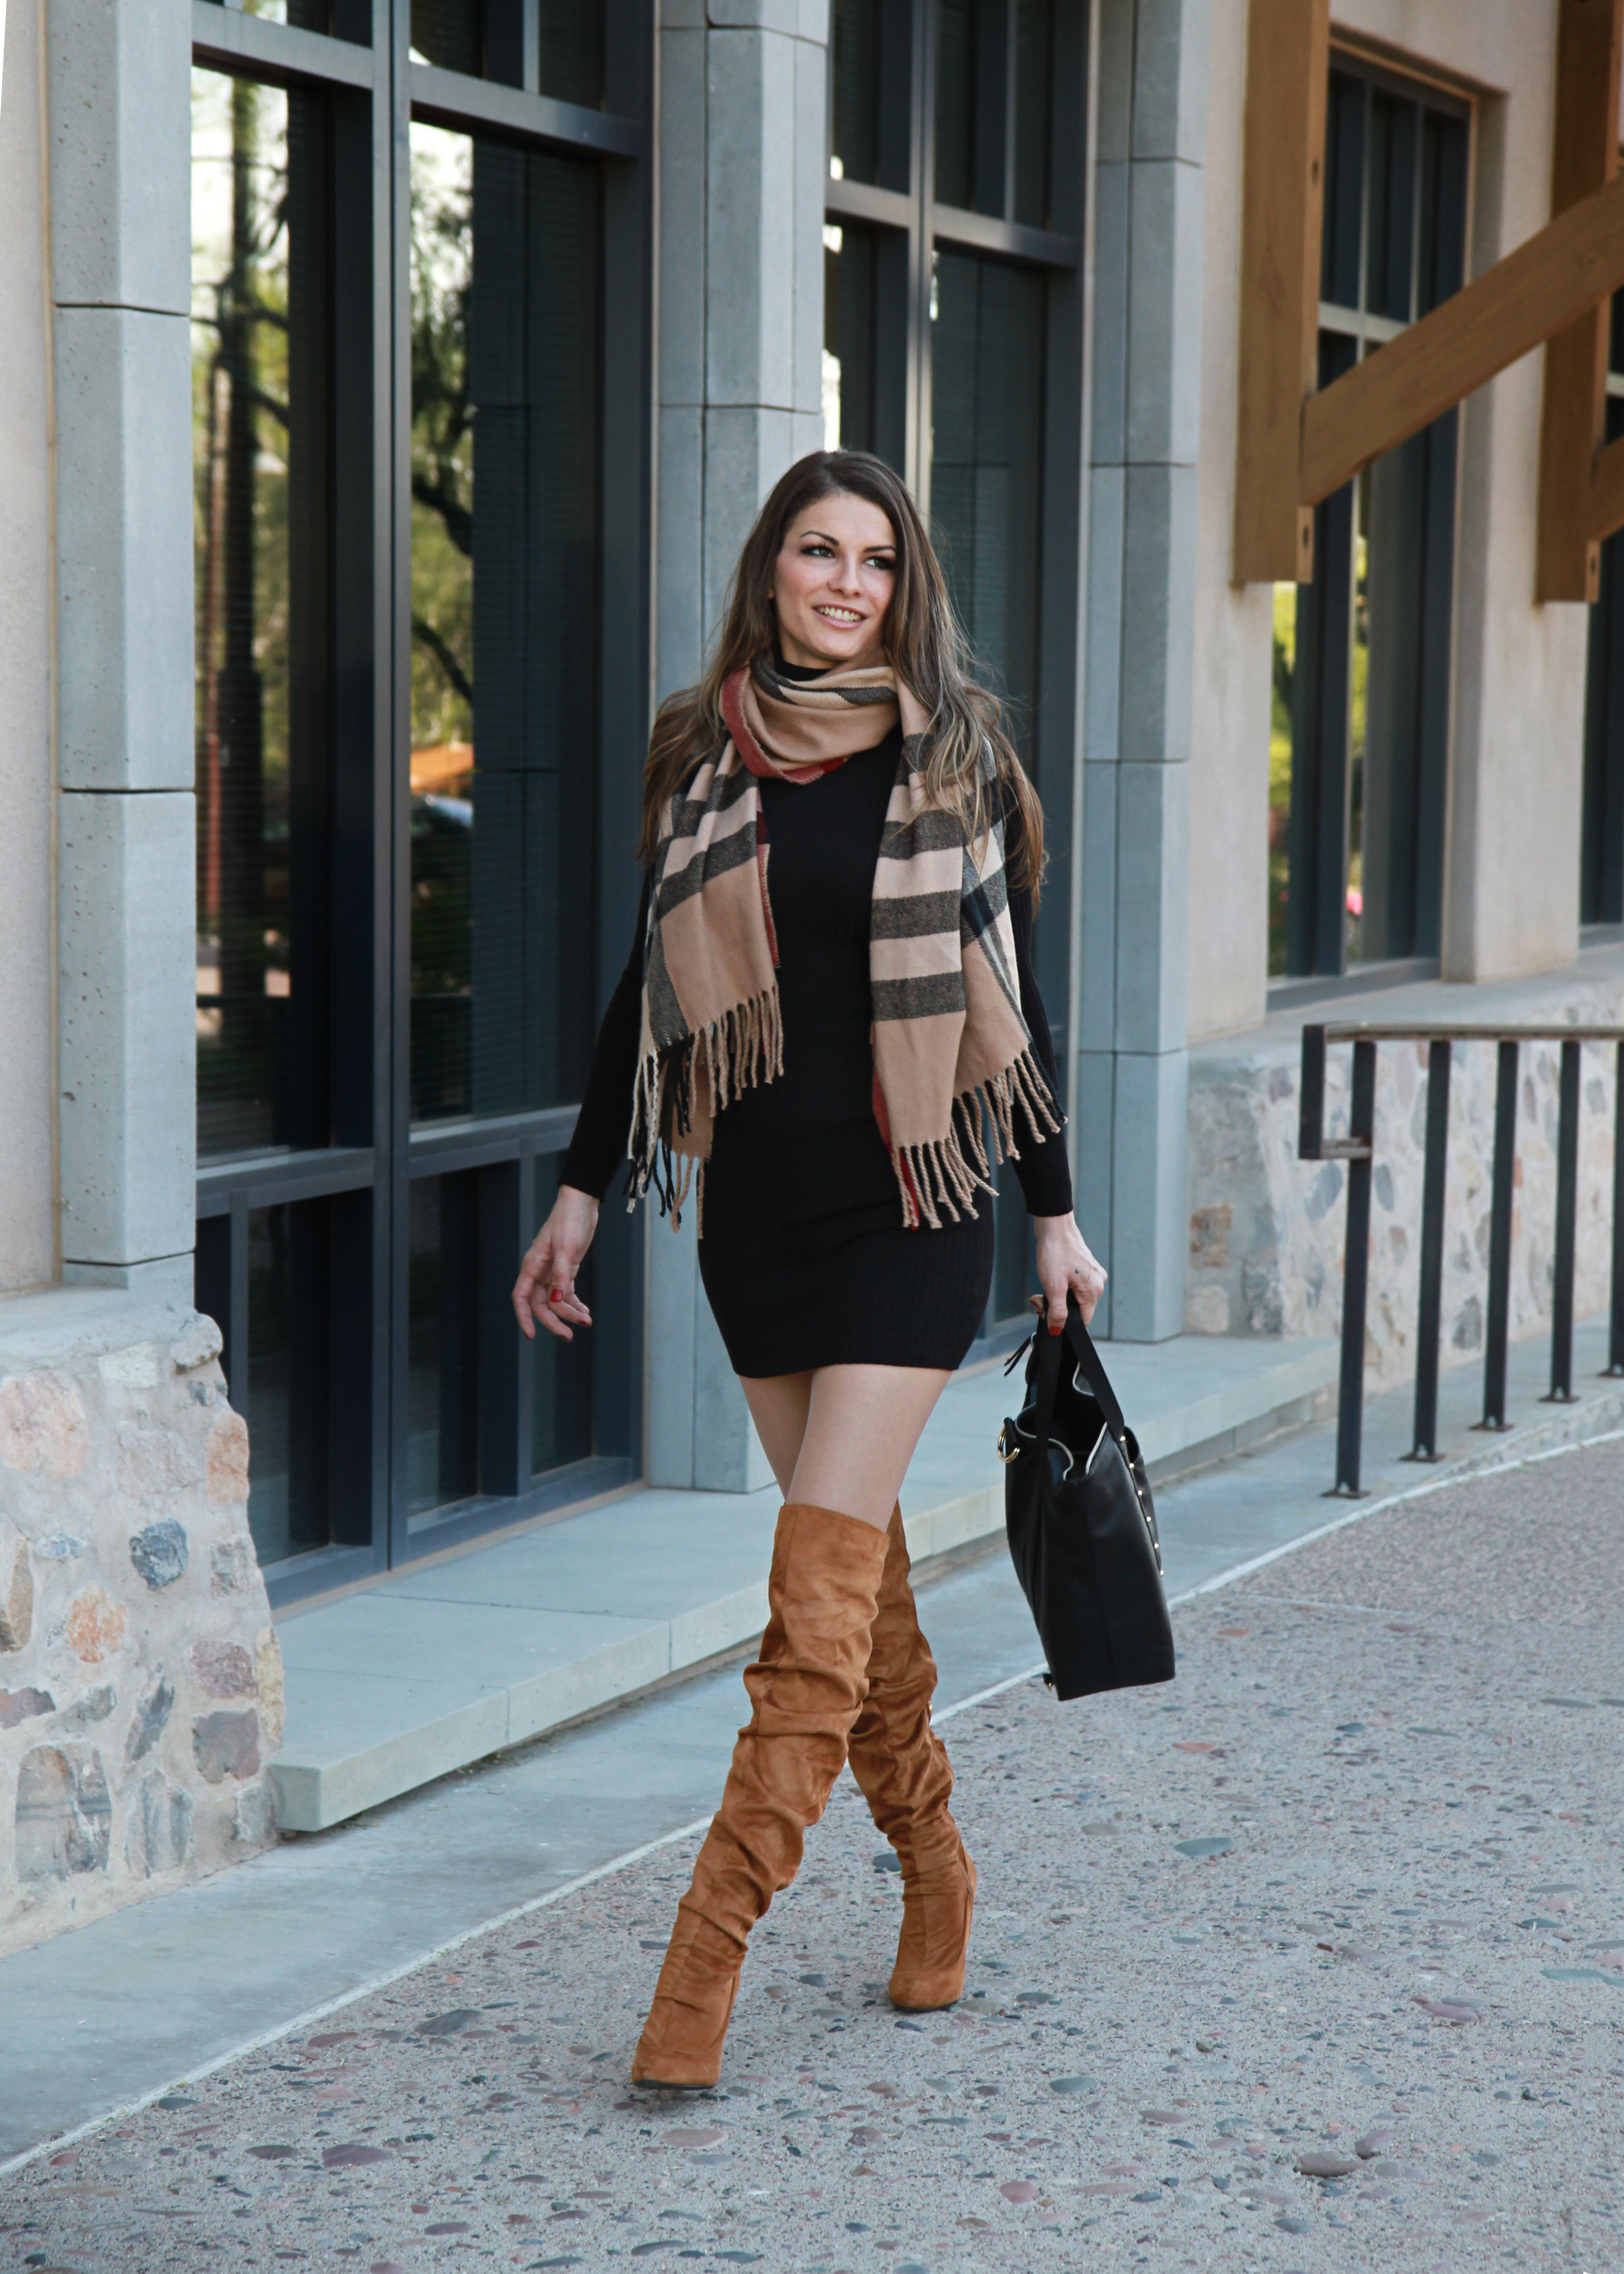 Fall Outfit 2019 Brown Knee High Boots Outfit Black Boots Outfit Fall Boots Outfit [ 4633 x 3309 Pixel ]